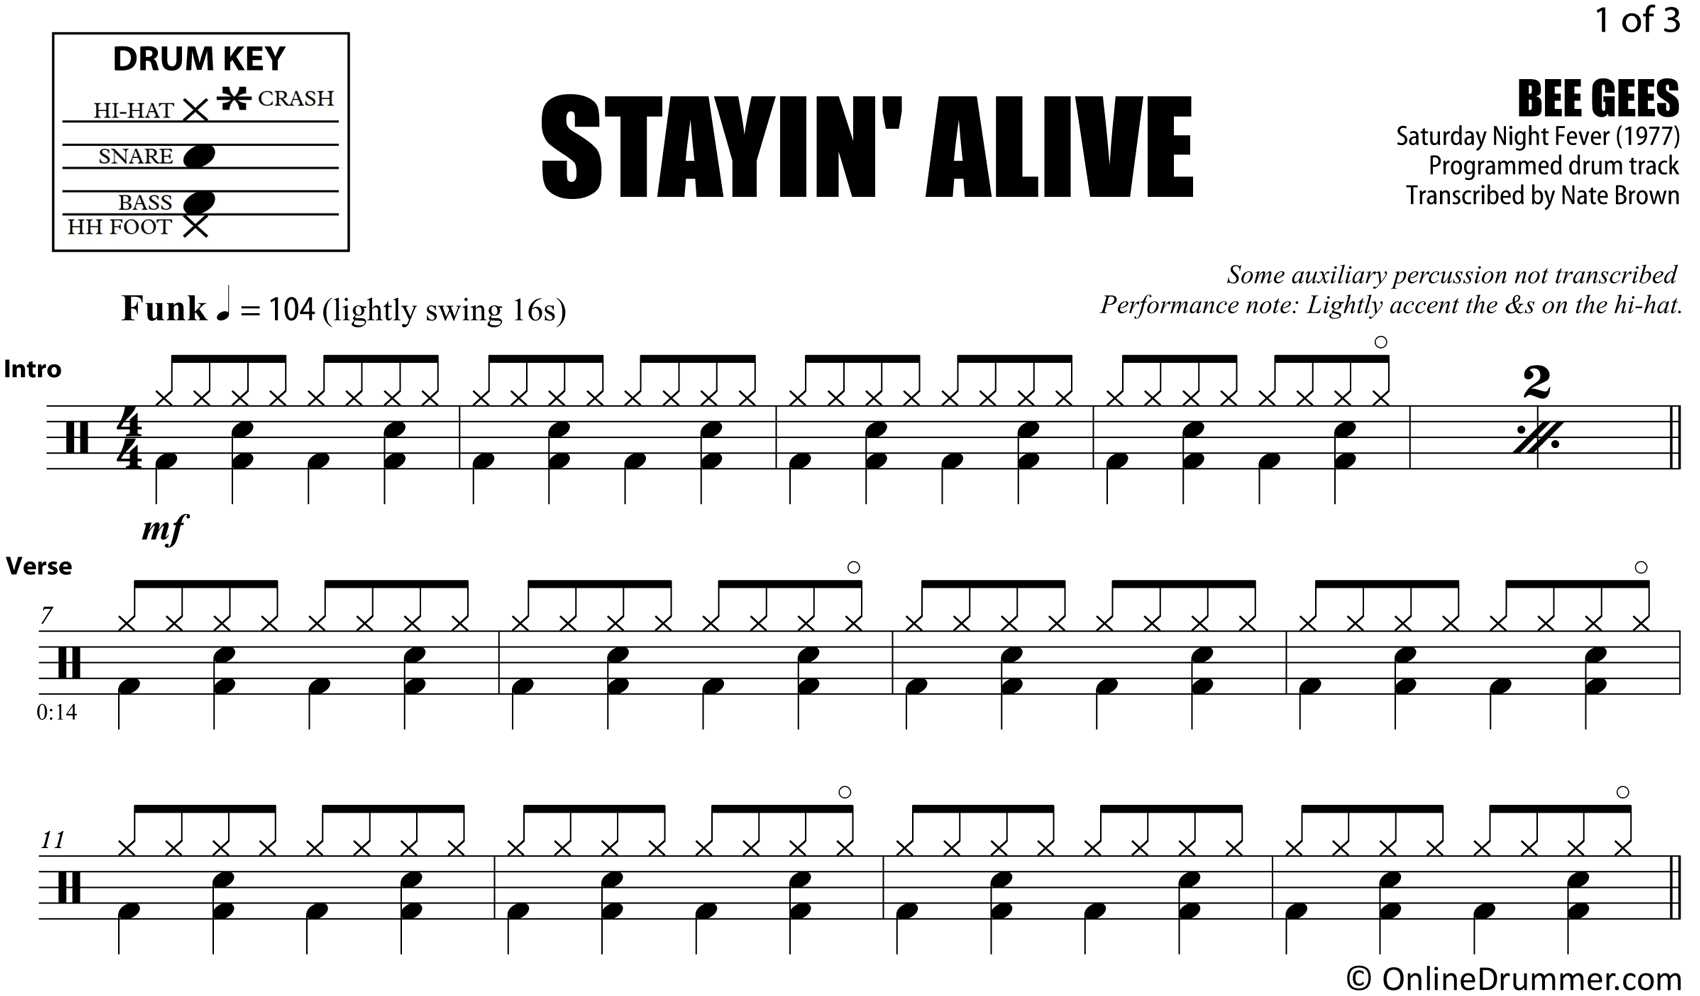 Stayin' Alive - Bee Gees - Drum Sheet Music